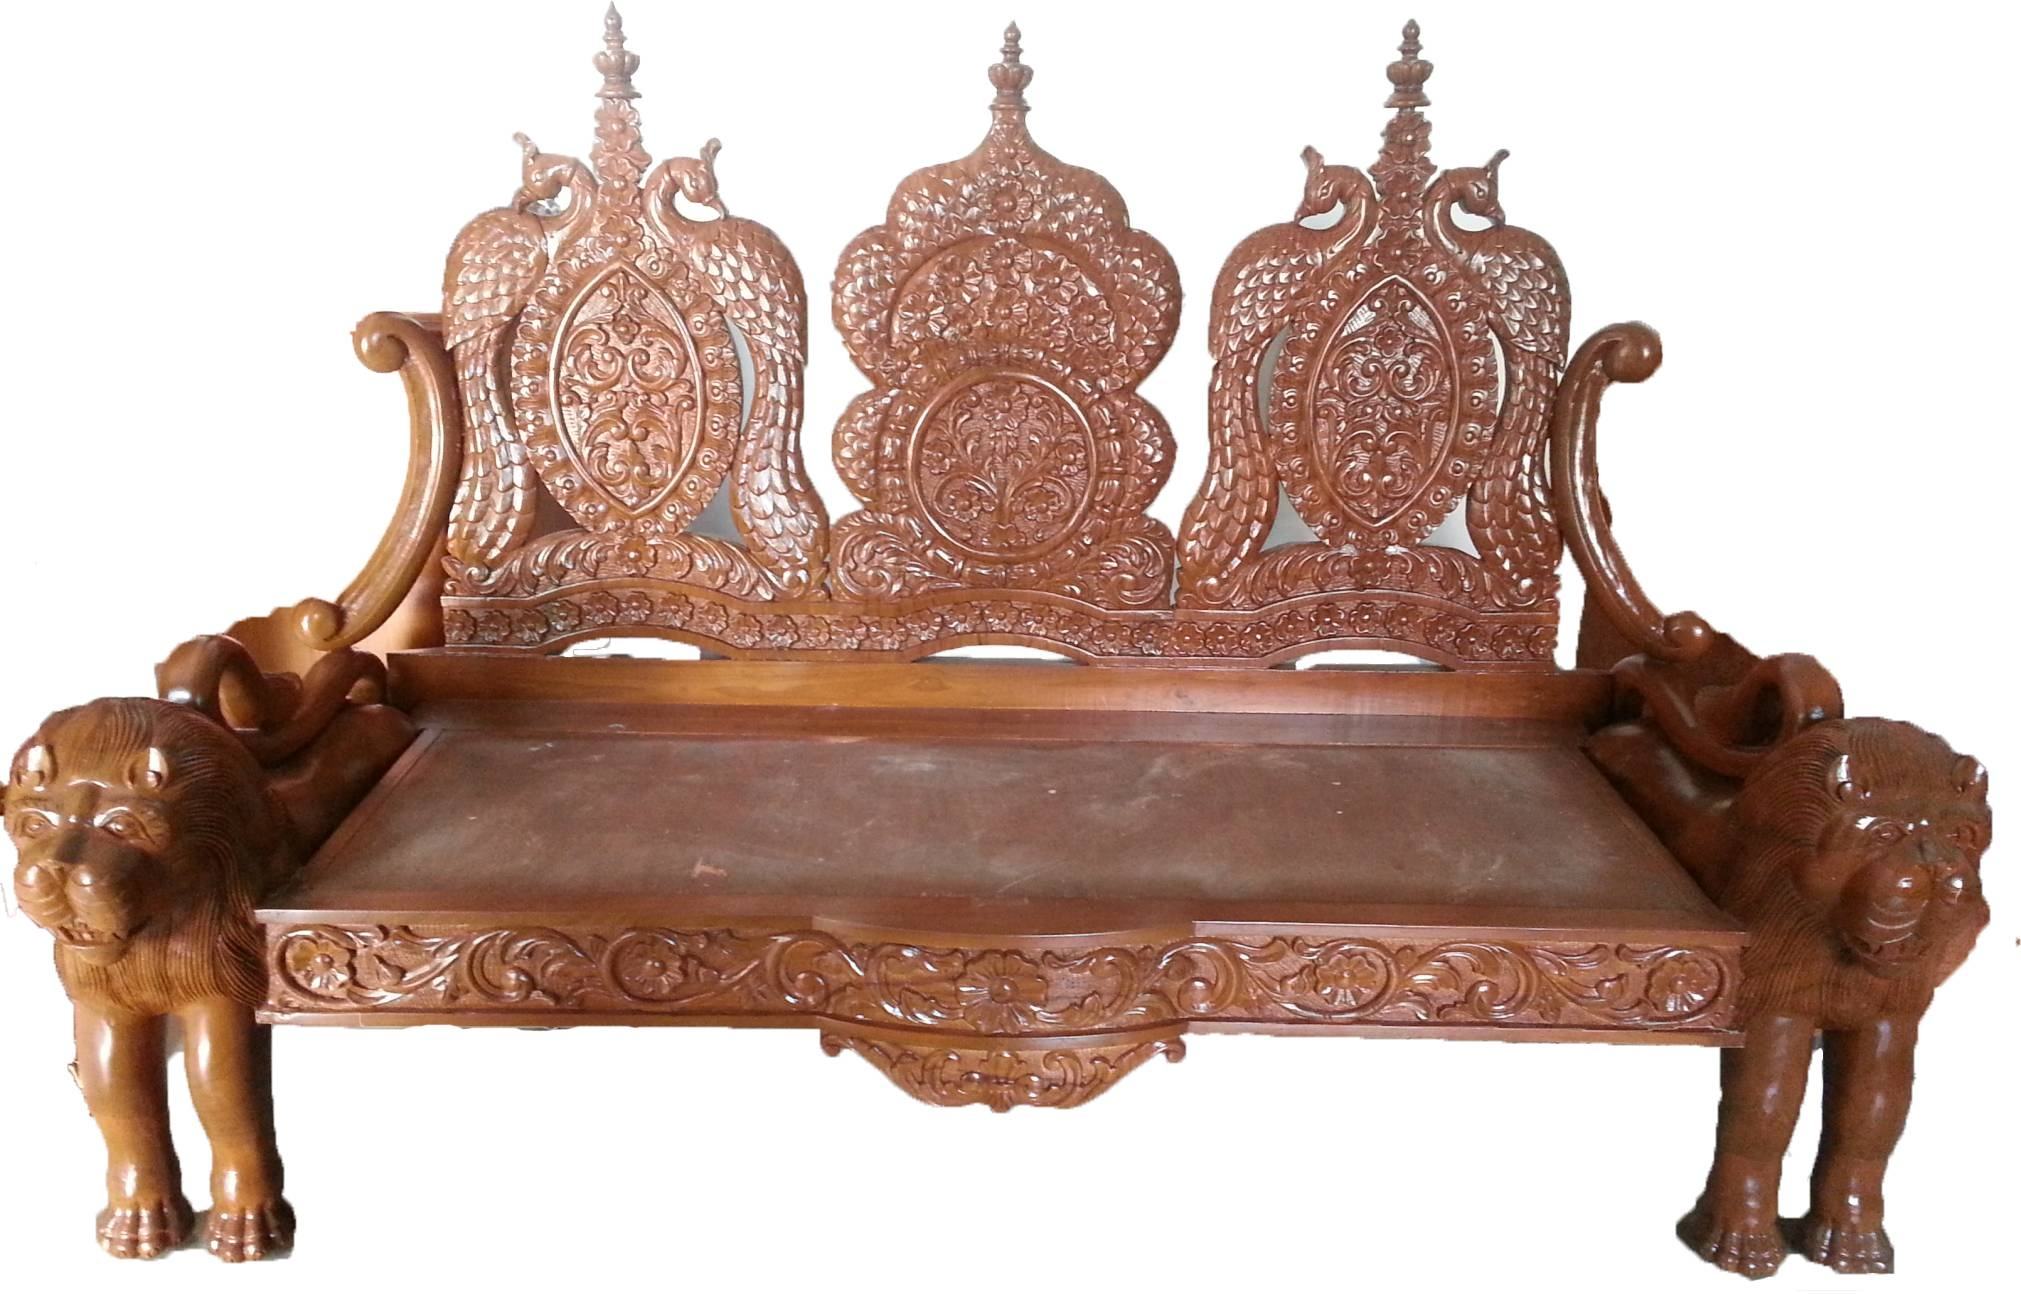 Lion Carving Wooden Sofa | Indiabizclub Intended For Carved Wood Sofas (View 7 of 15)